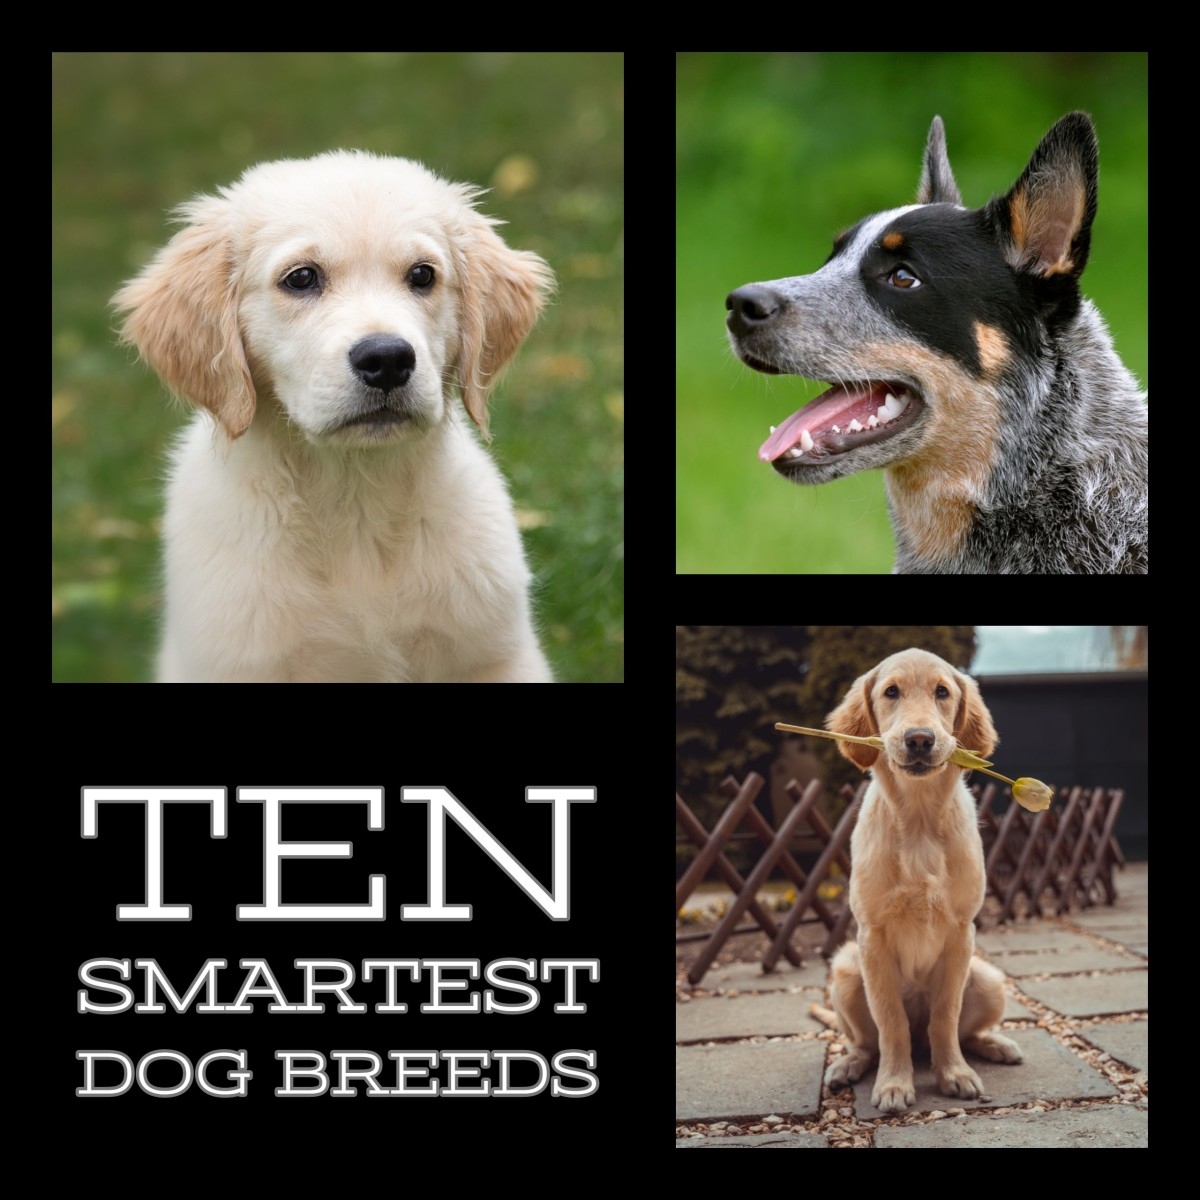 The 10 smartest dog breeds. Pictured above is the Australian Cattle Dog, Labrador Retriever, and Golden Retriever.